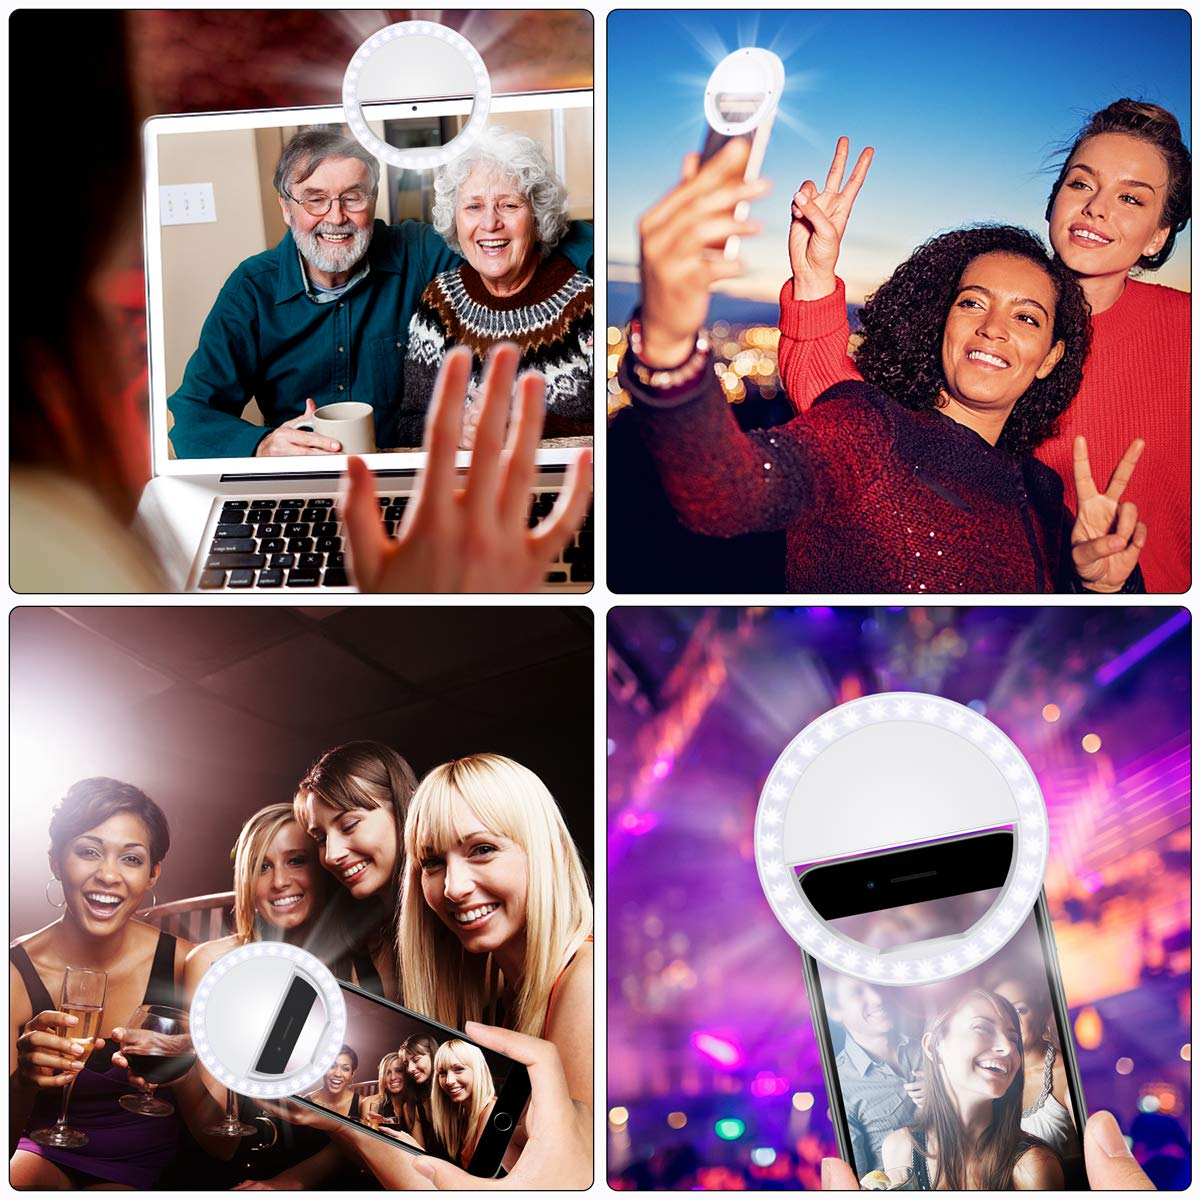 Image 5 - Smart Phone Camera  Androids Vlogging on Instagram Facebook YouTube   36 Rechargable LED Phone Light-in Phone Holders & Stands from Cellphones & Telecommunications